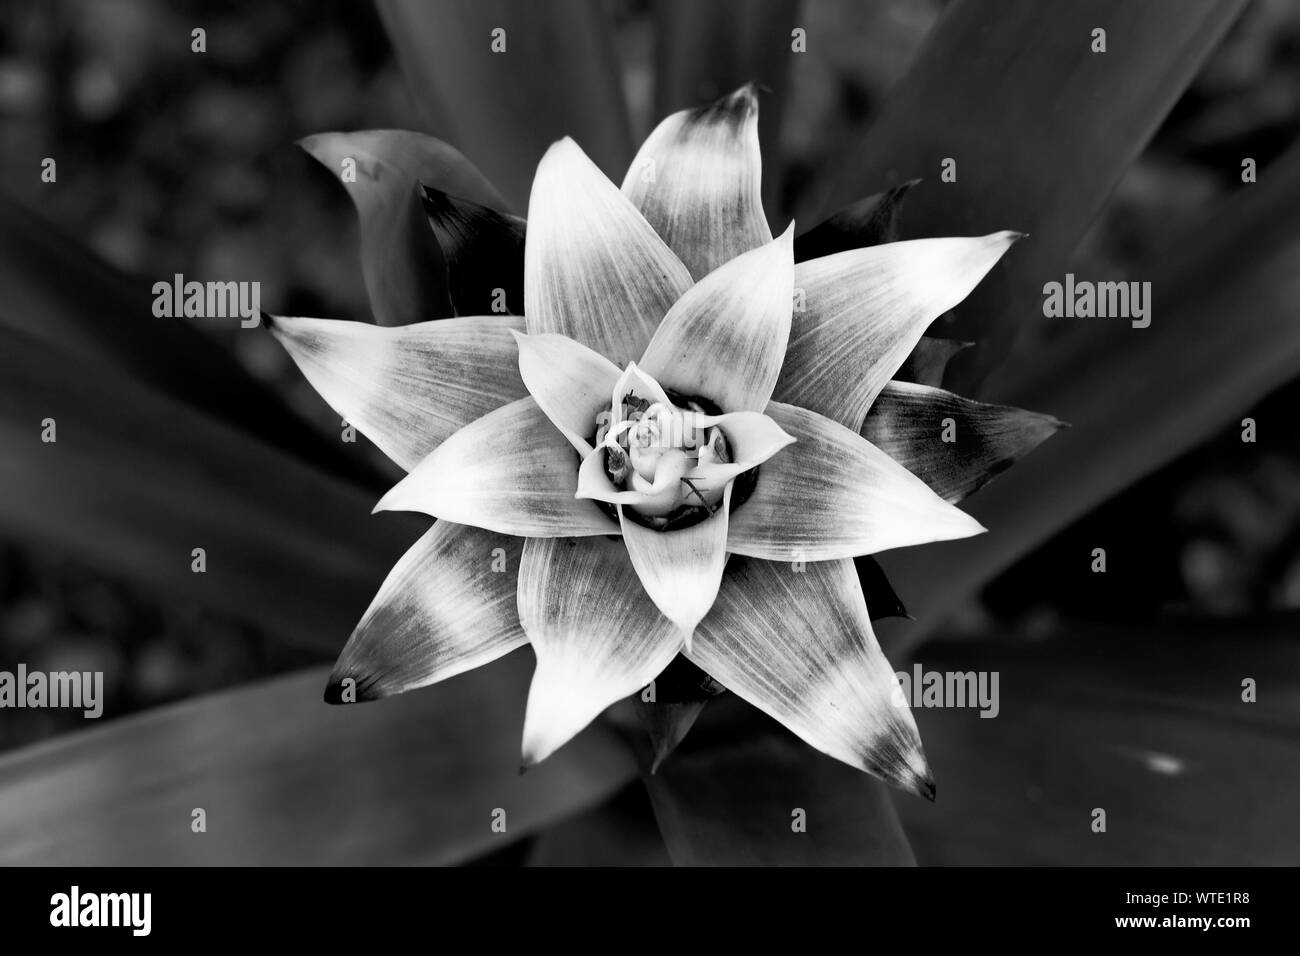 Beautiful big flower with triangular leaves. Black and white contrast photo. Light center with a flower and a dark background. Stock Photo